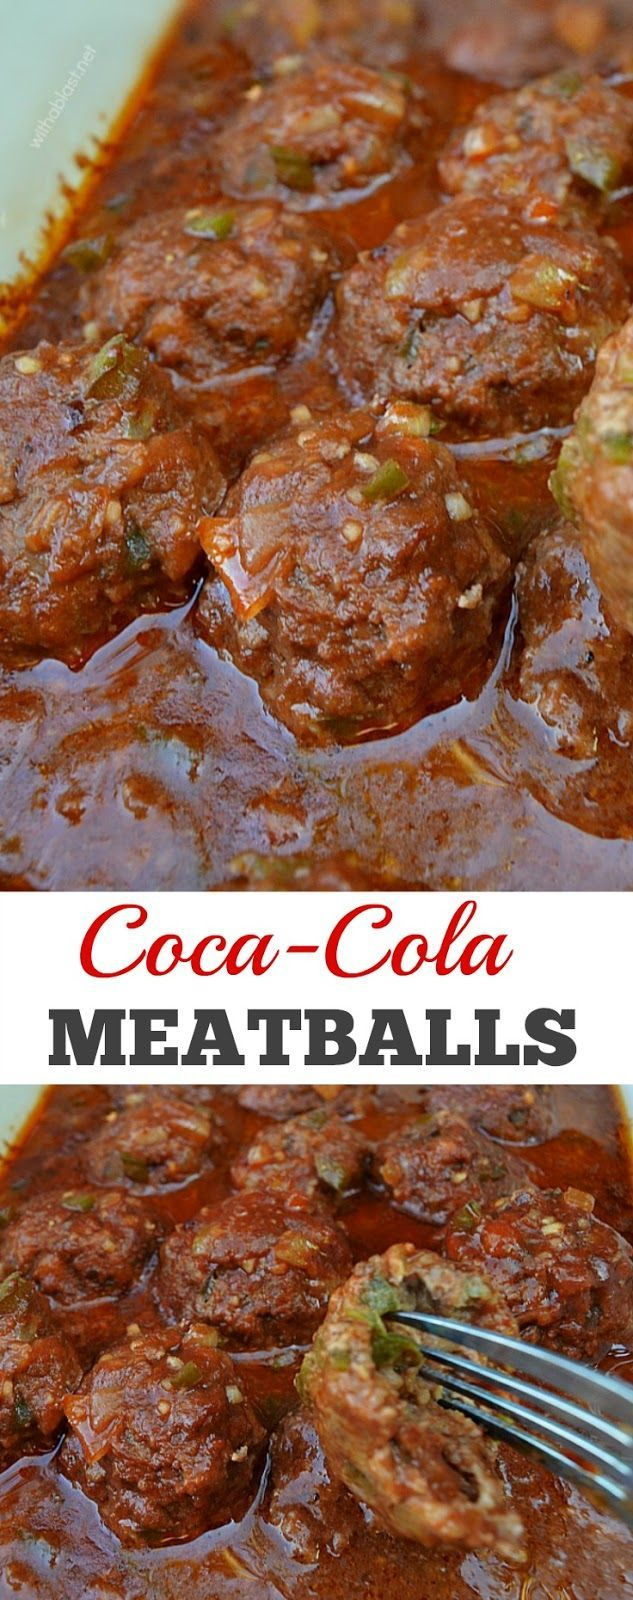 Comforting, rich, tangy and saucy Coca-Cola Meatballs - my family's favorite dinner choice ! Serve over pasta, rice or mashed potatoes